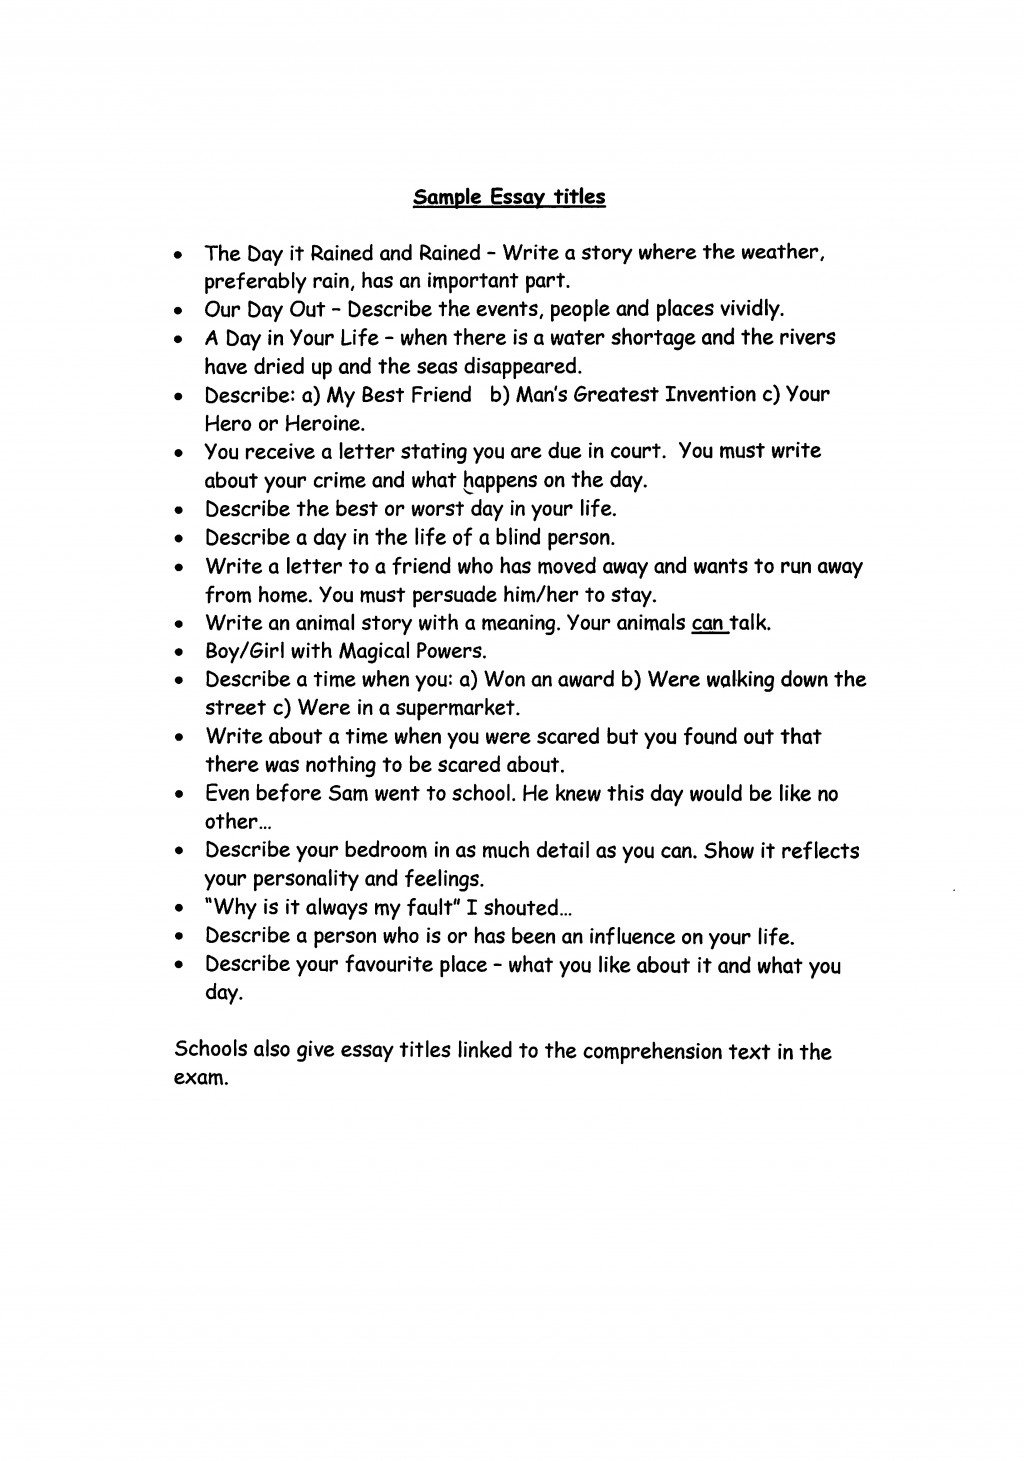 007 Essay On Childhood Memory My Memories Will R Example Outstanding 150 Words Ideas Examples Large